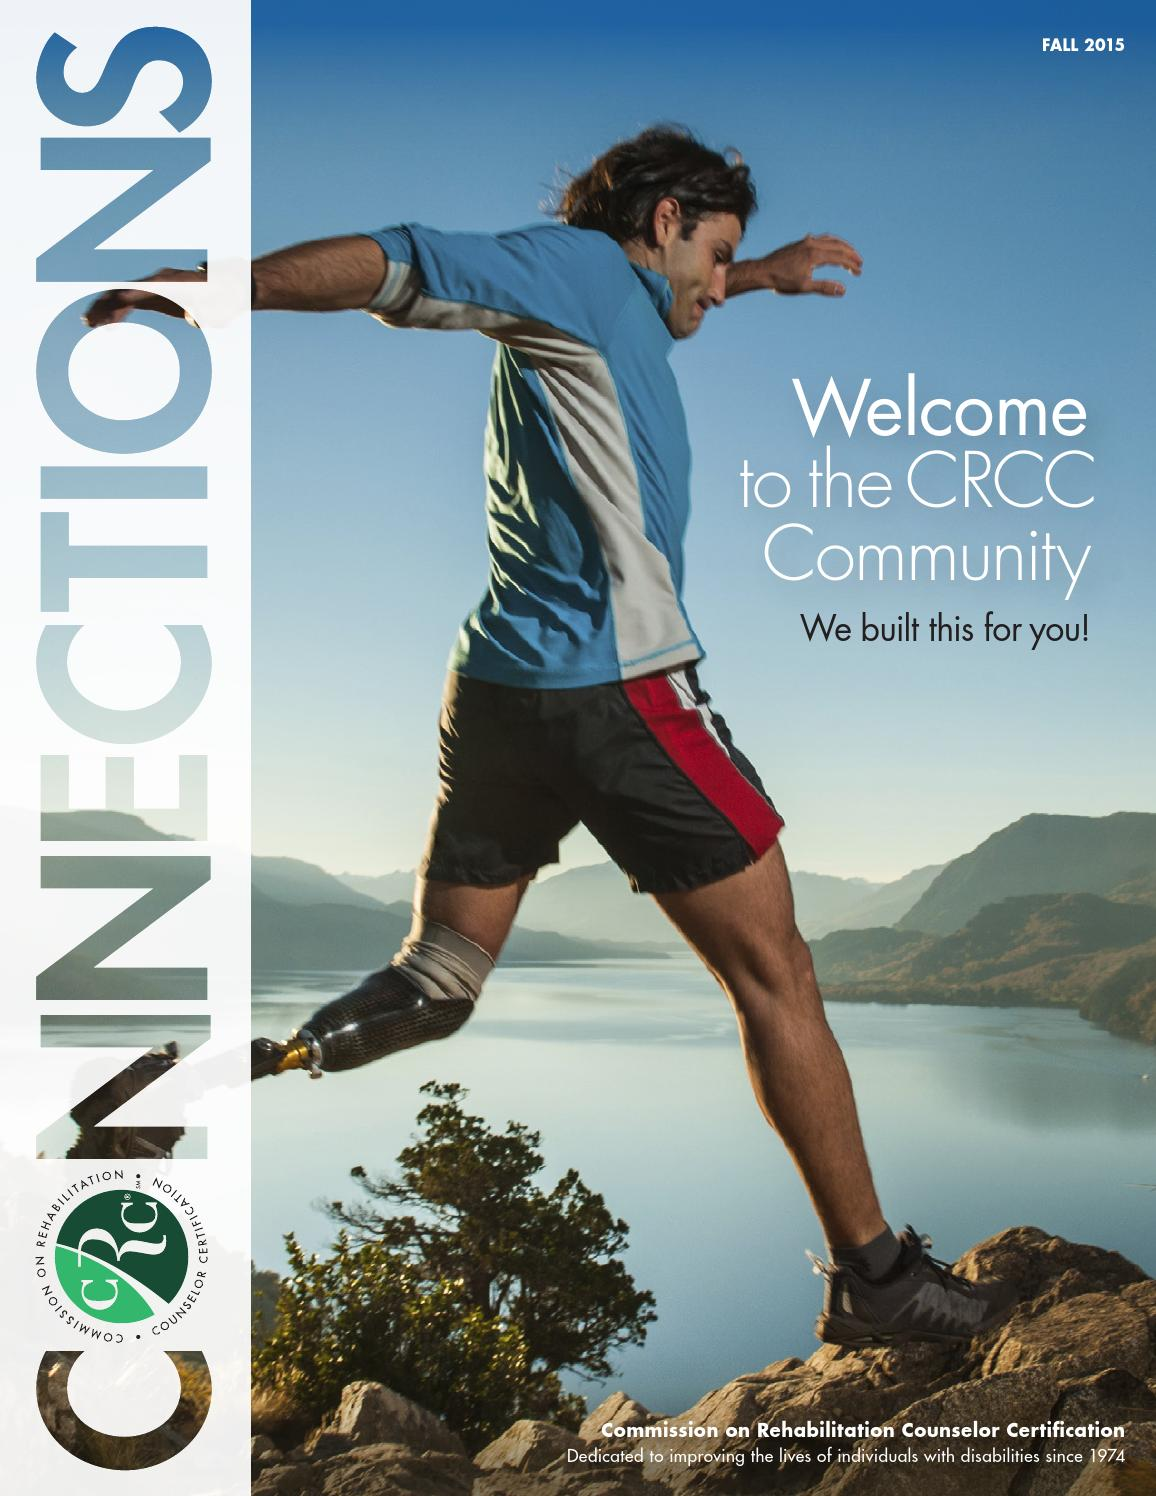 Crcc Connections Fall 2015 By Crcc Issuu